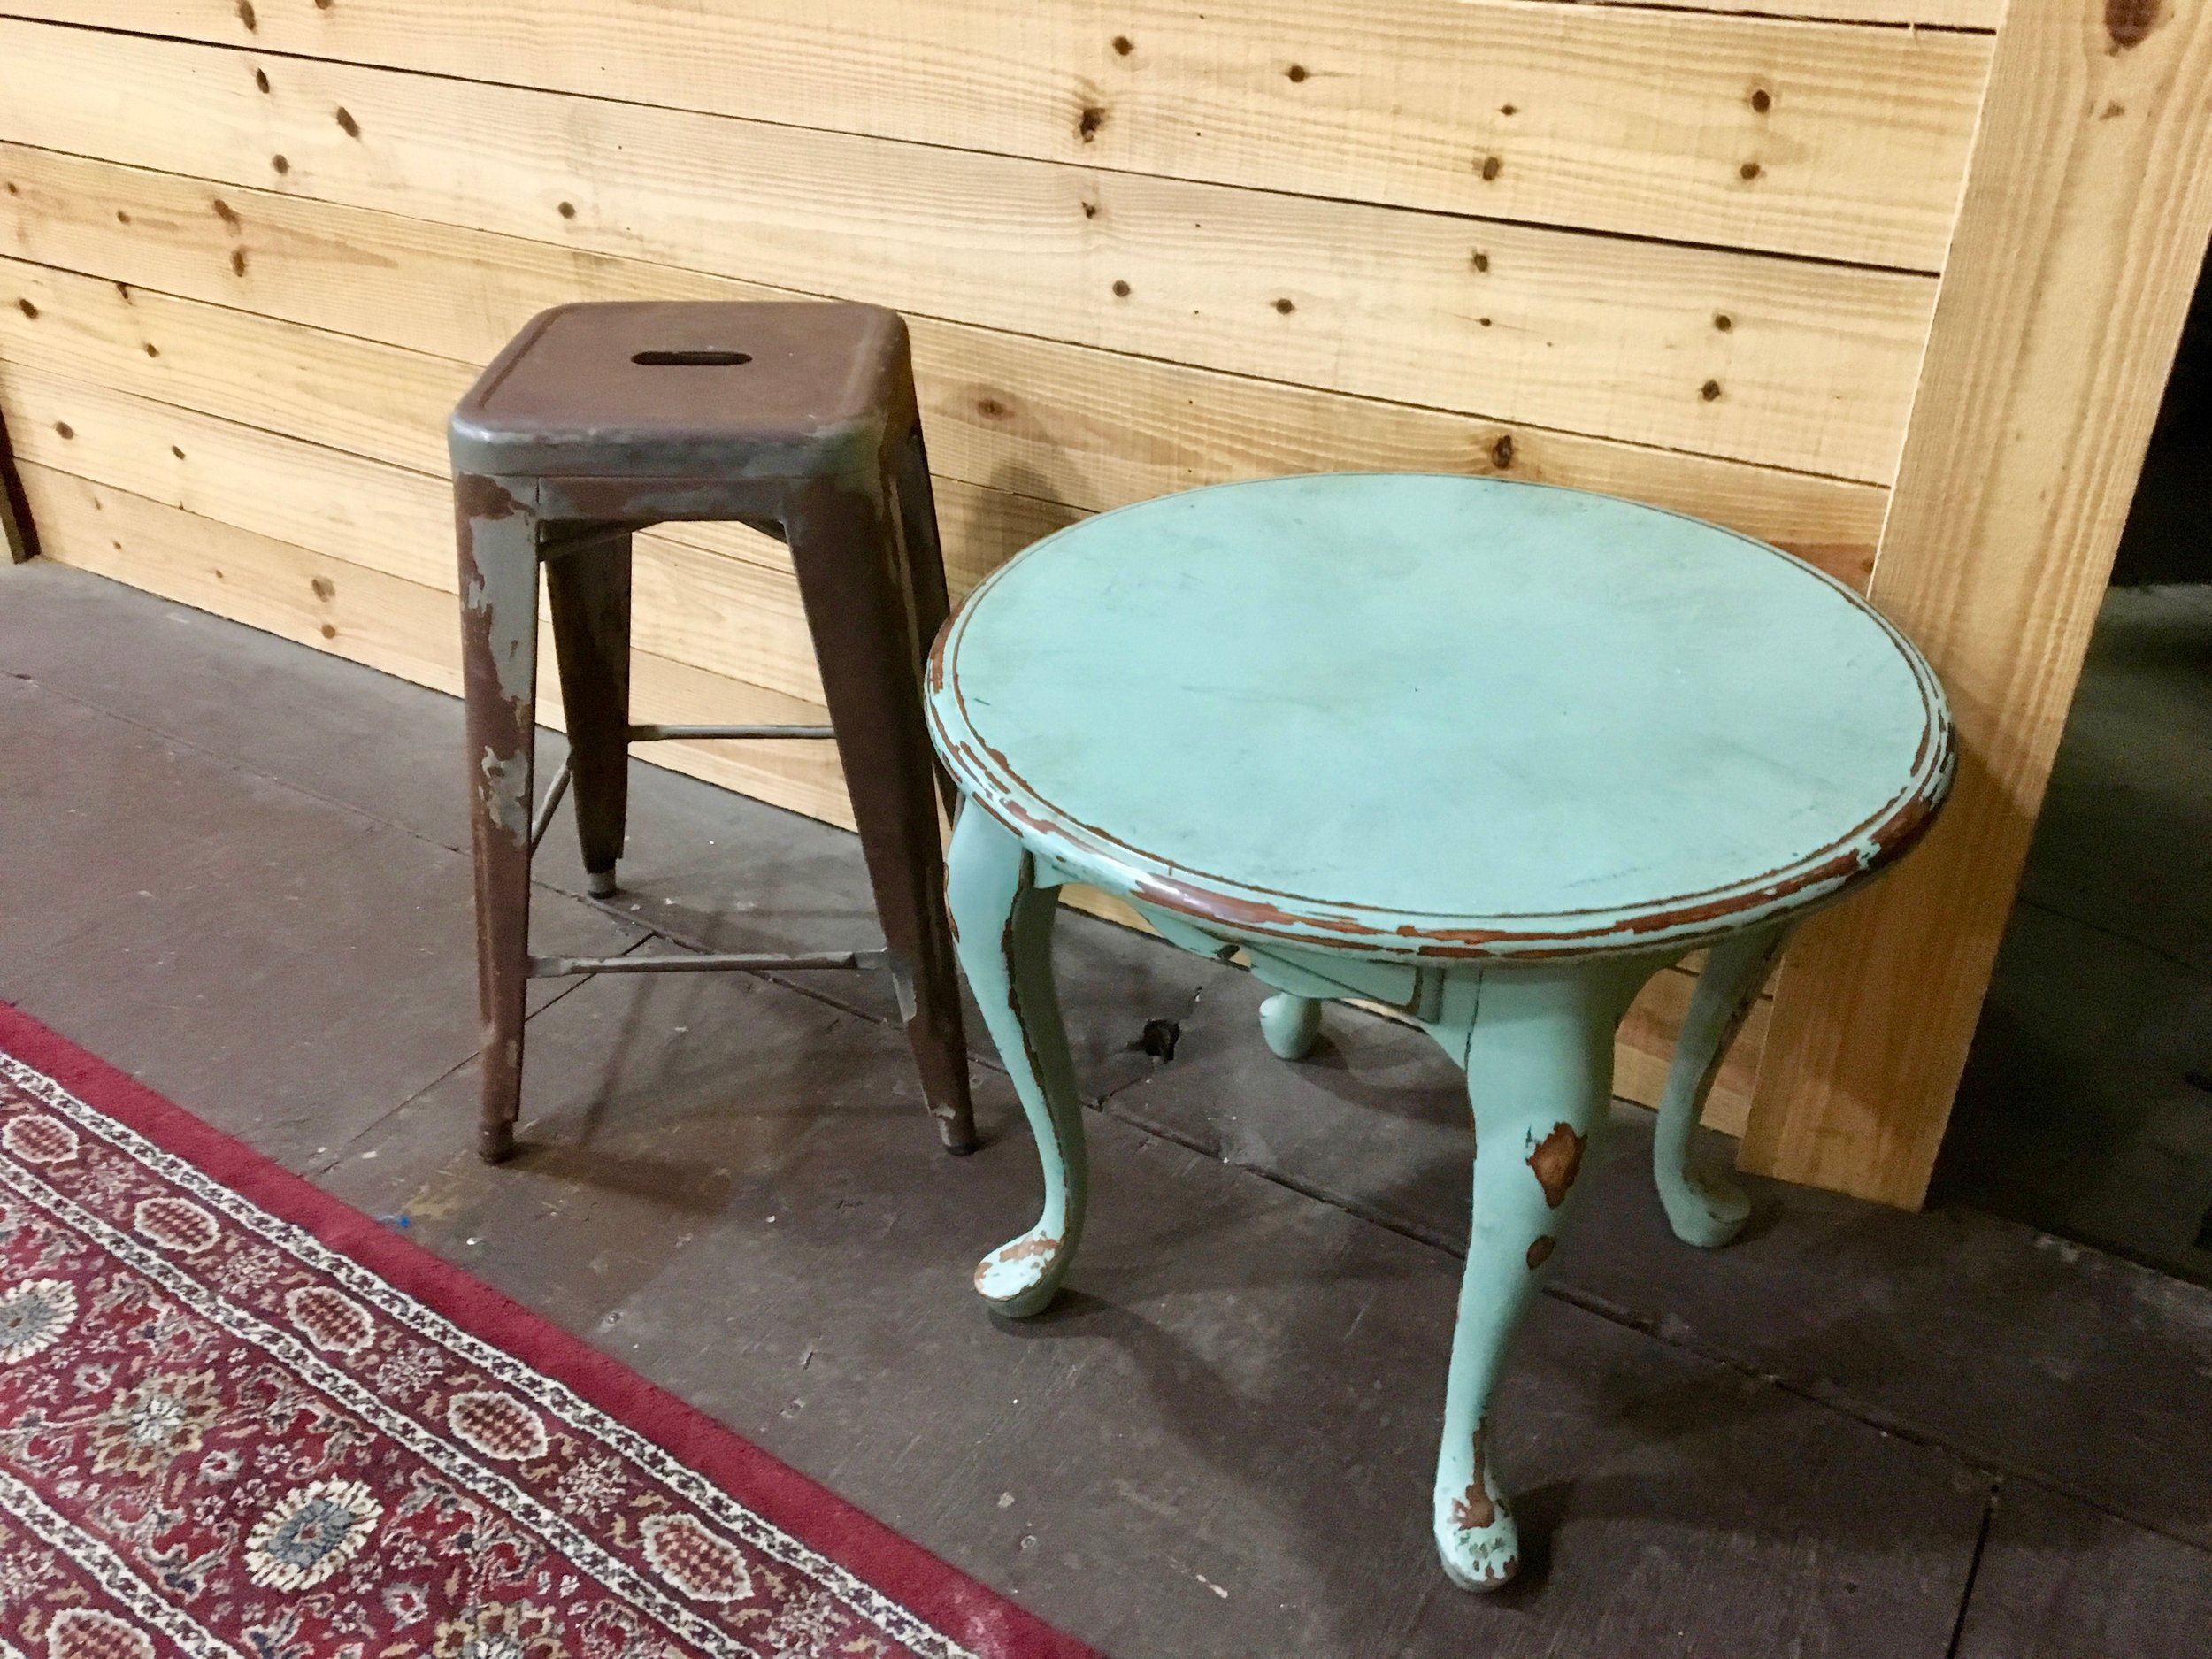 Vintage furniture - 1 of 37 (26).jpg